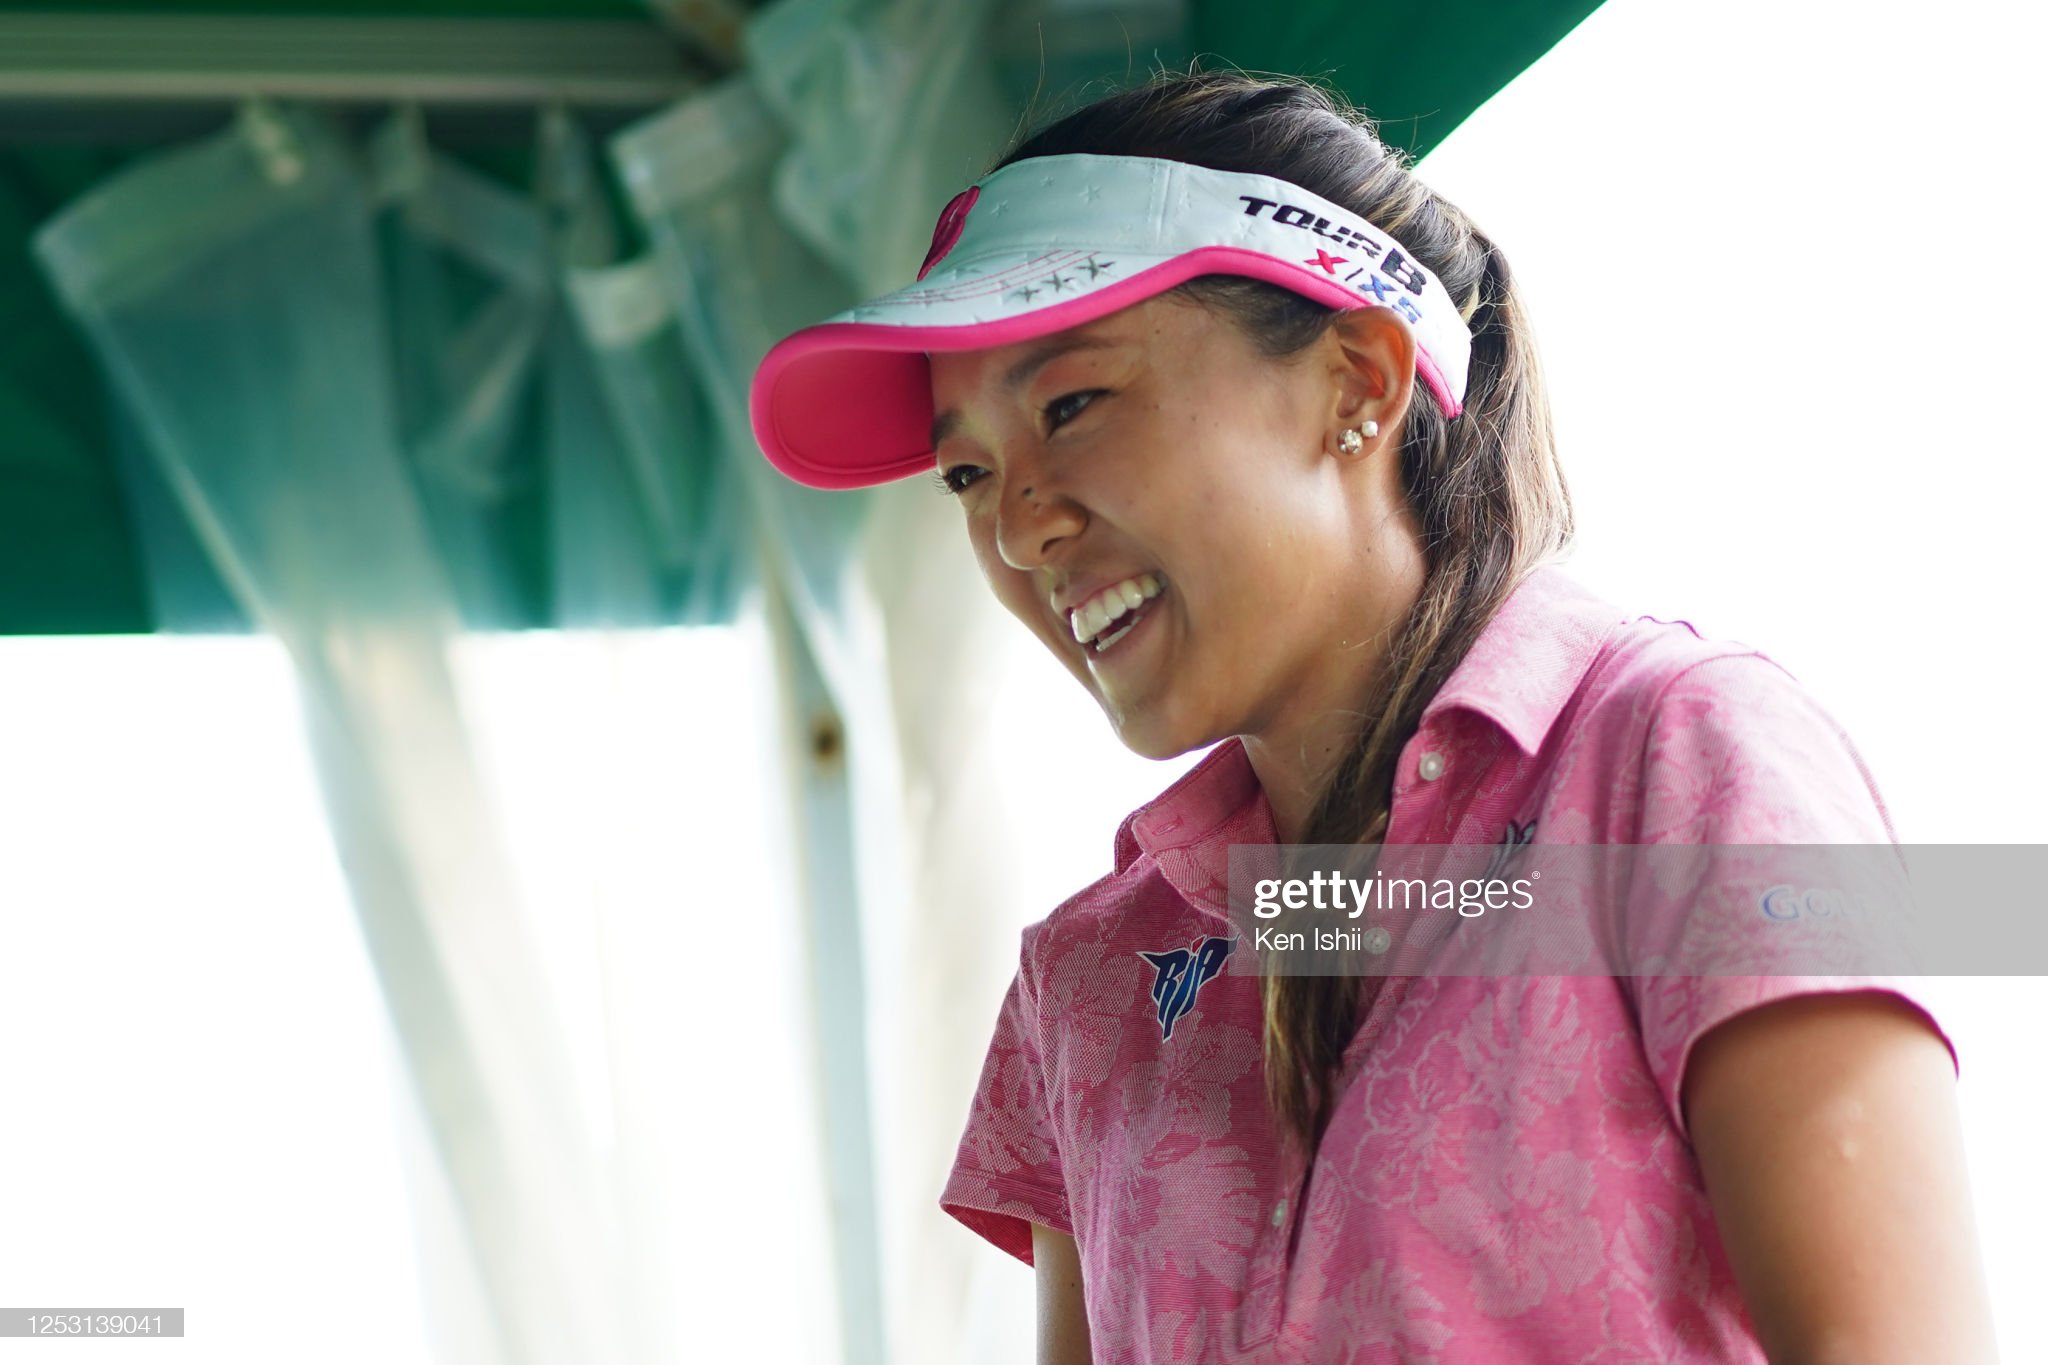 https://media.gettyimages.com/photos/eimi-koga-of-the-united-states-is-seen-on-the-1st-tee-during-the-of-picture-id1253139041?s=2048x2048